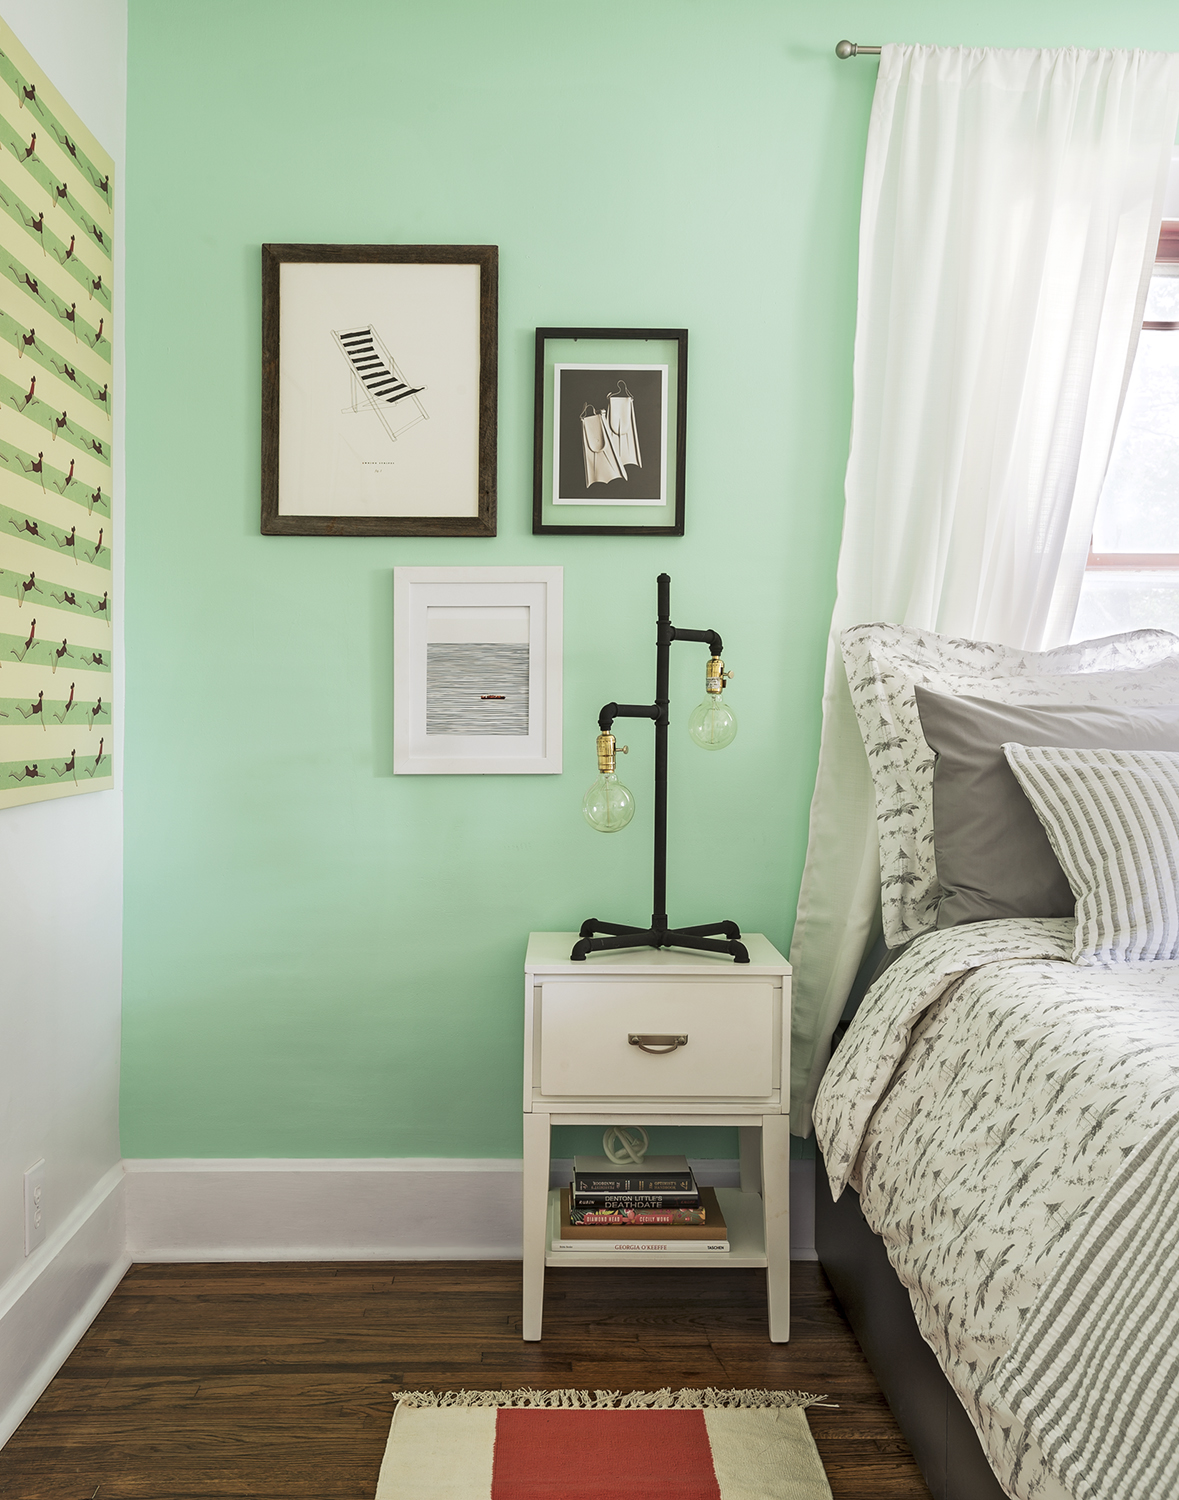 Home for Good: Master Bedroom After